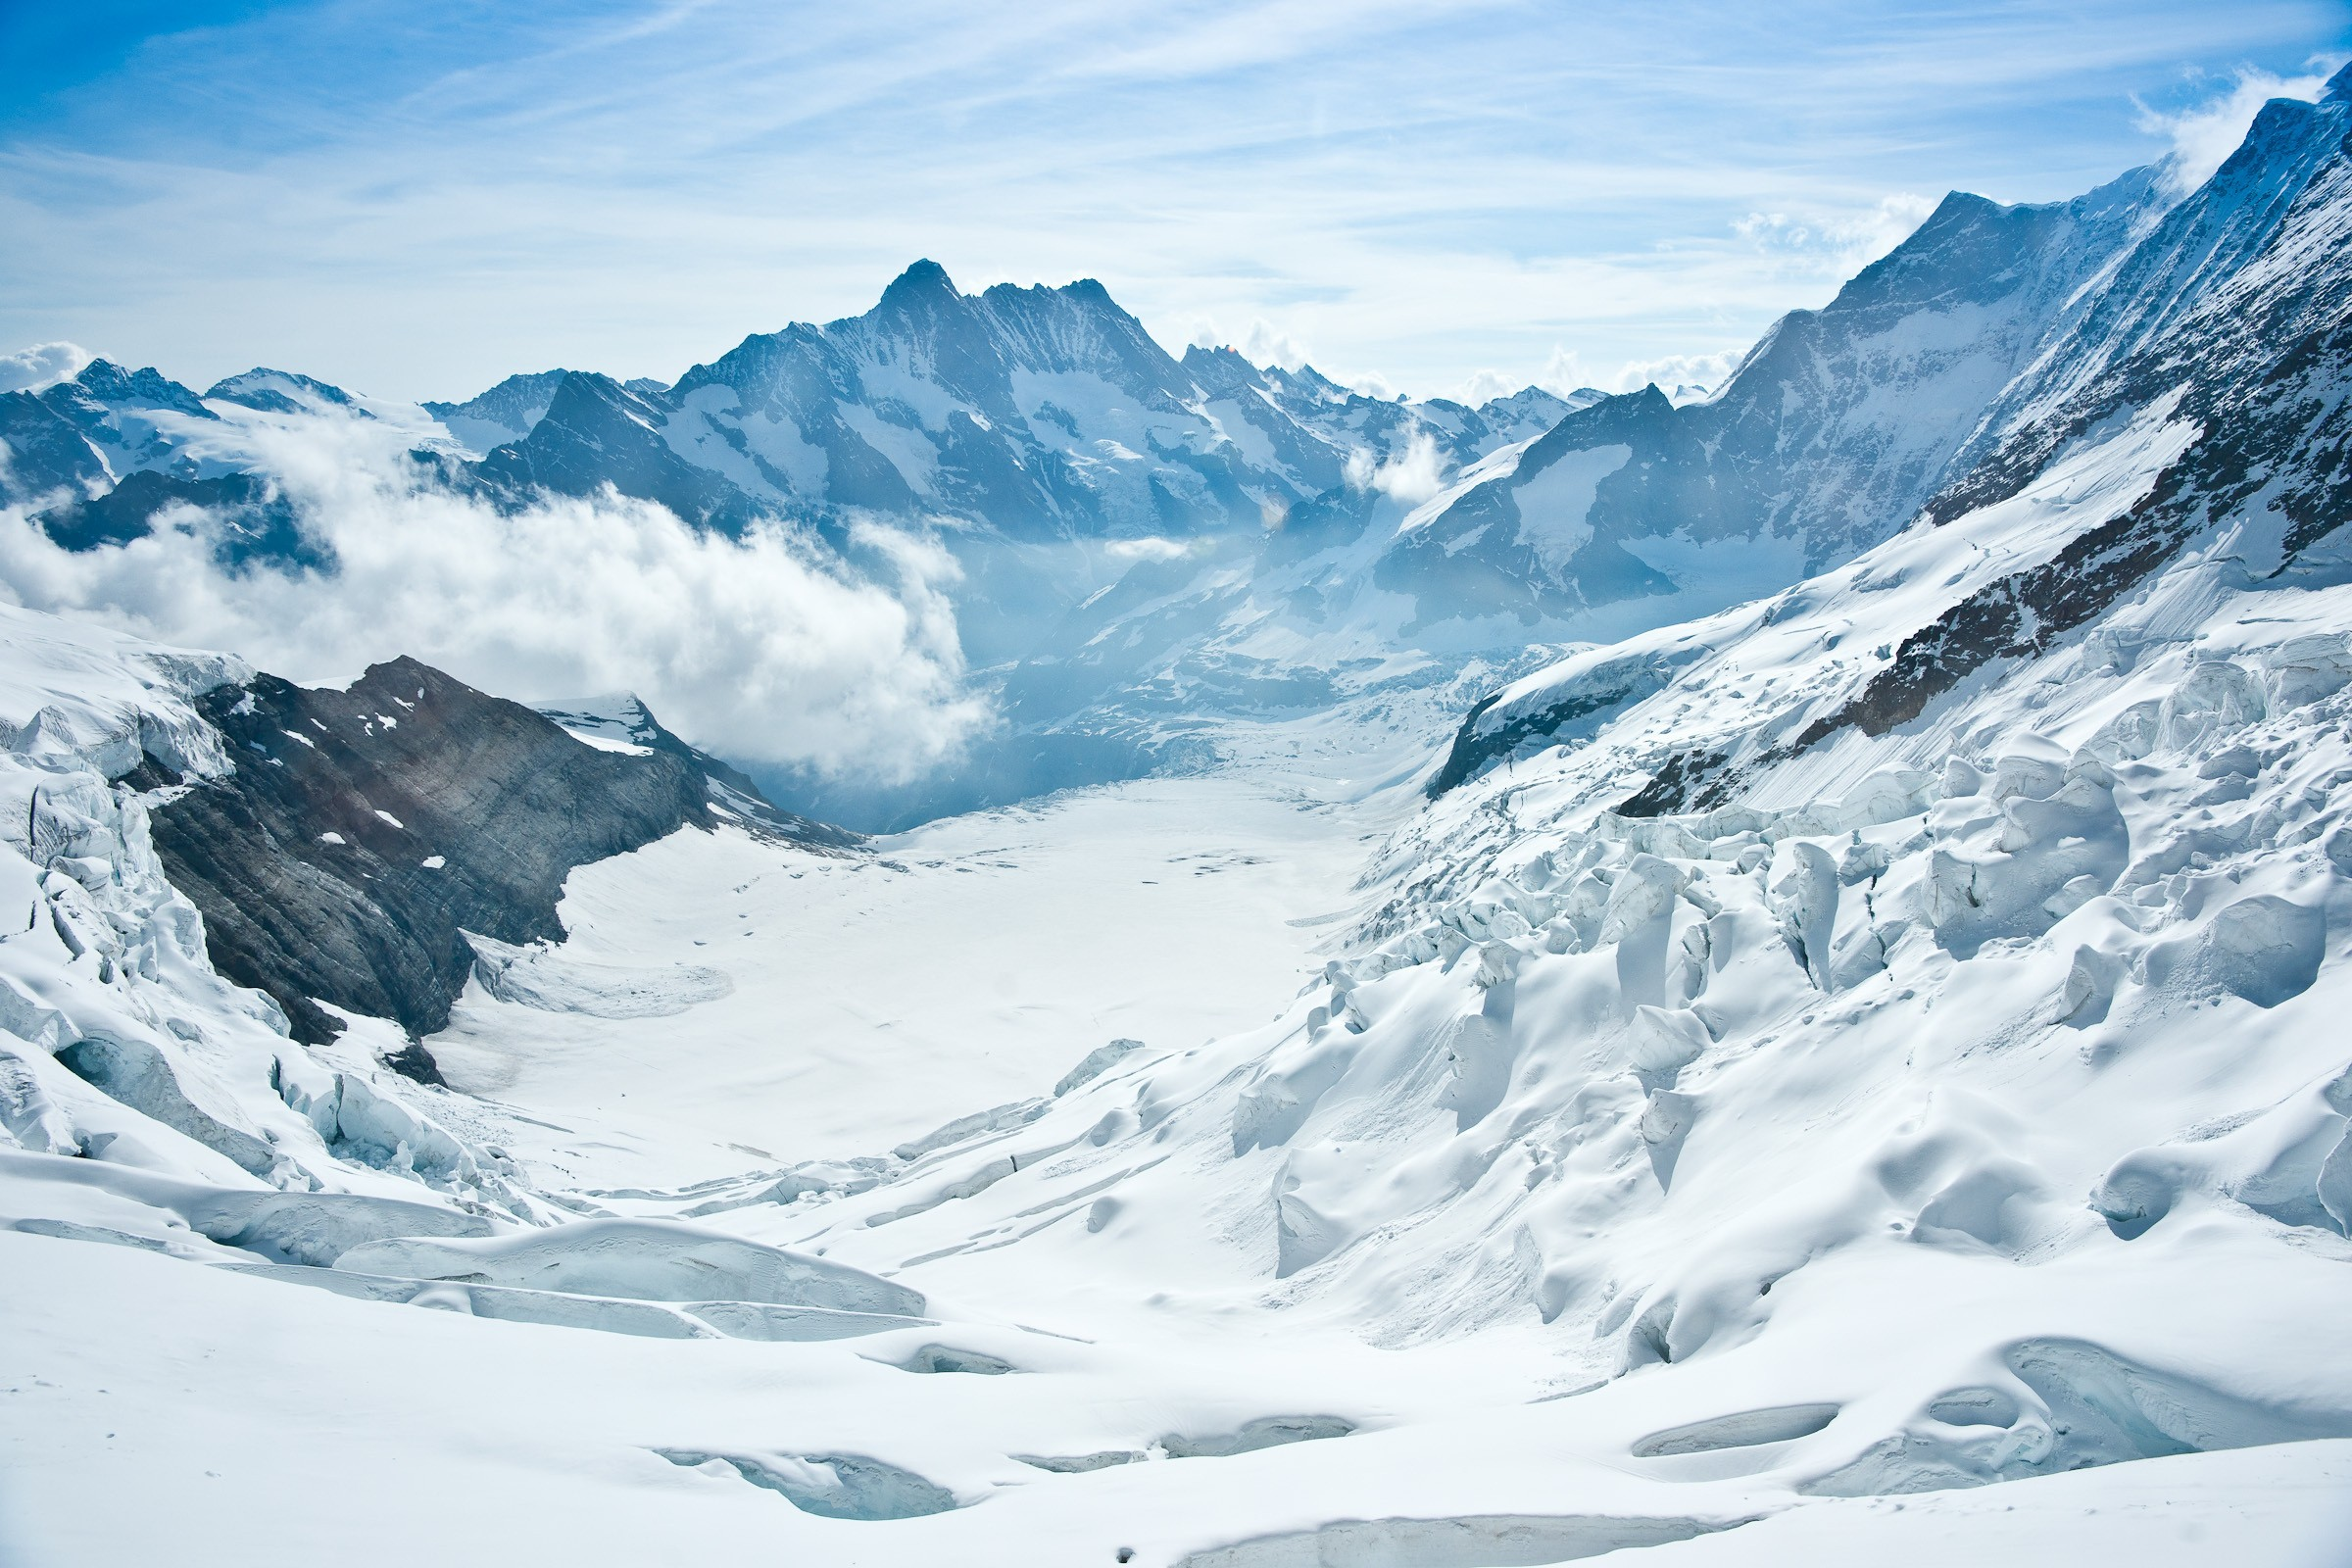 High definition picture of winter. photo of the mountains. snow | ImageBank.biz